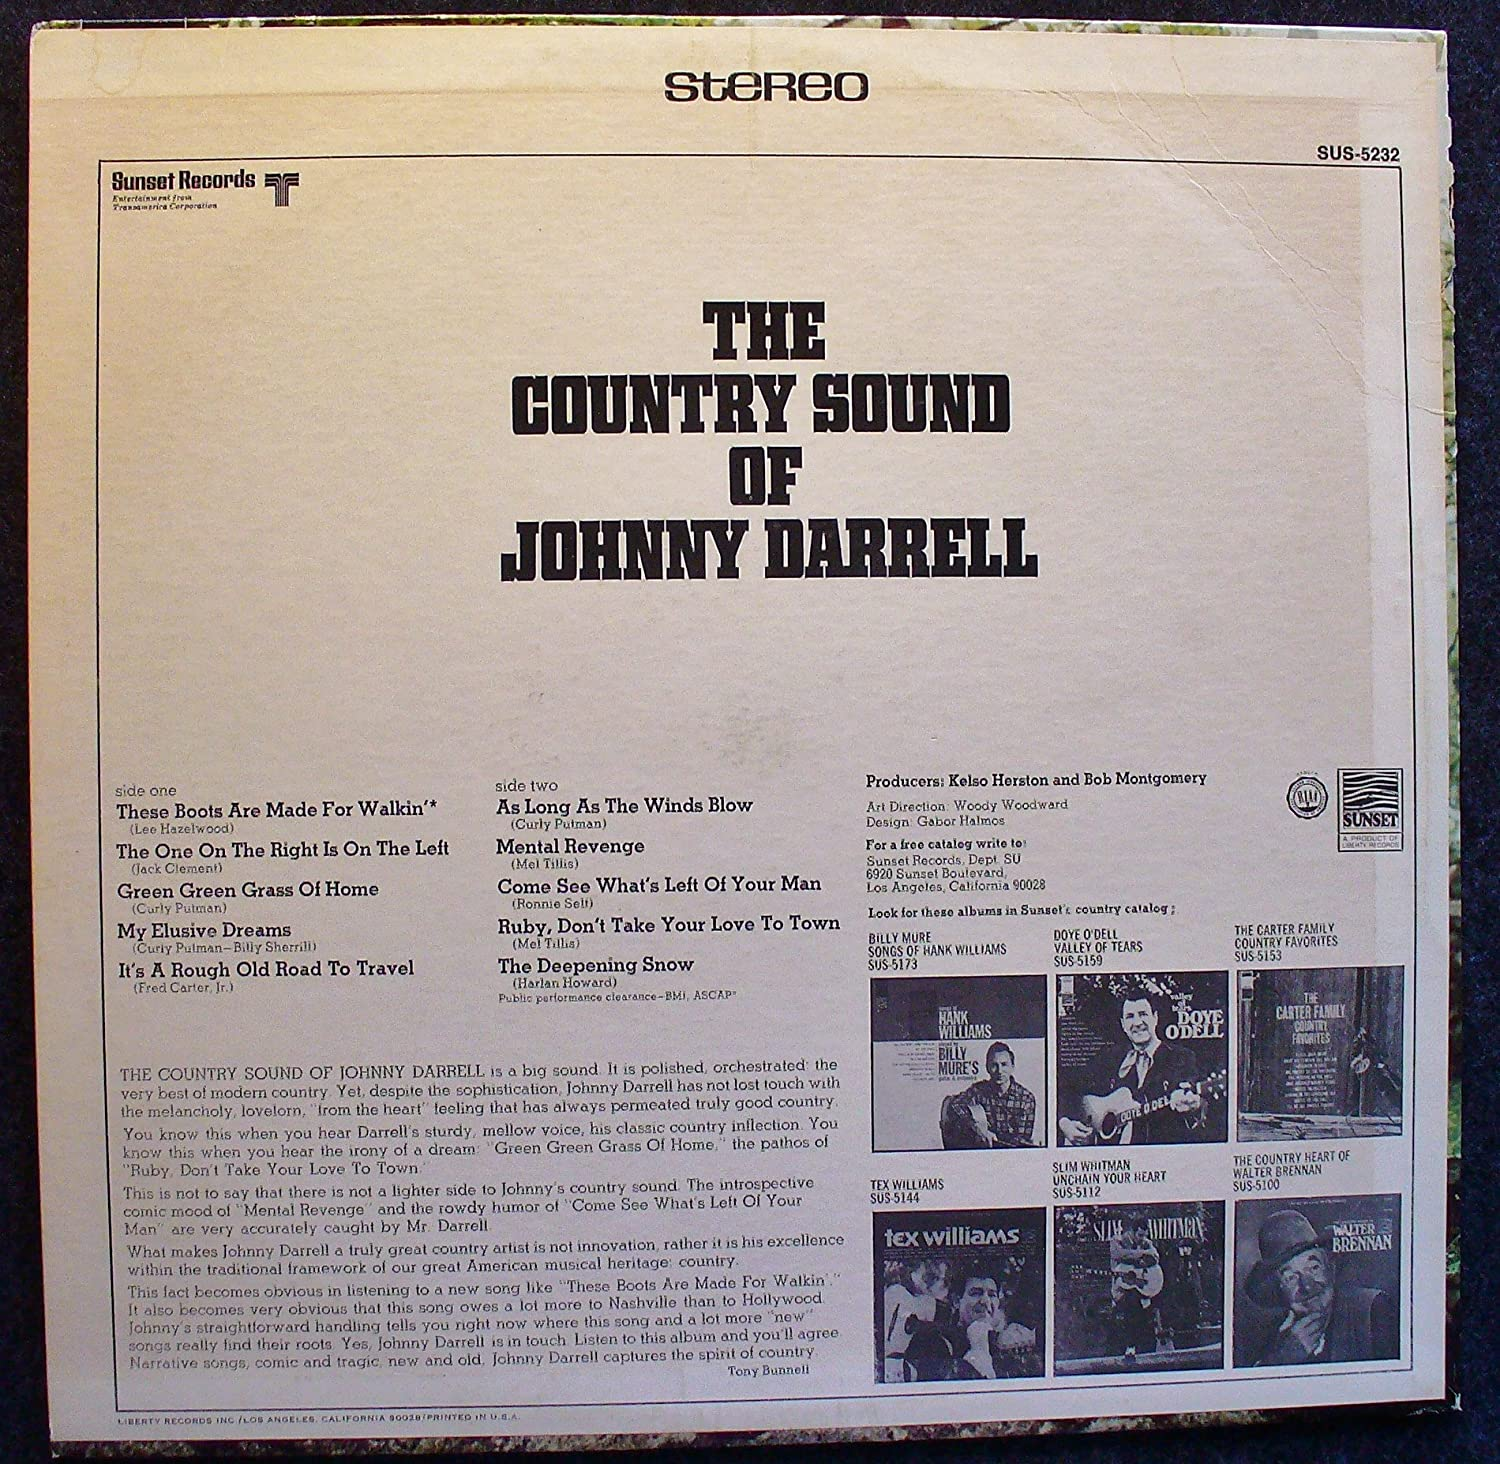 the Country Sound of Johnny Darrell - Amazon com Music